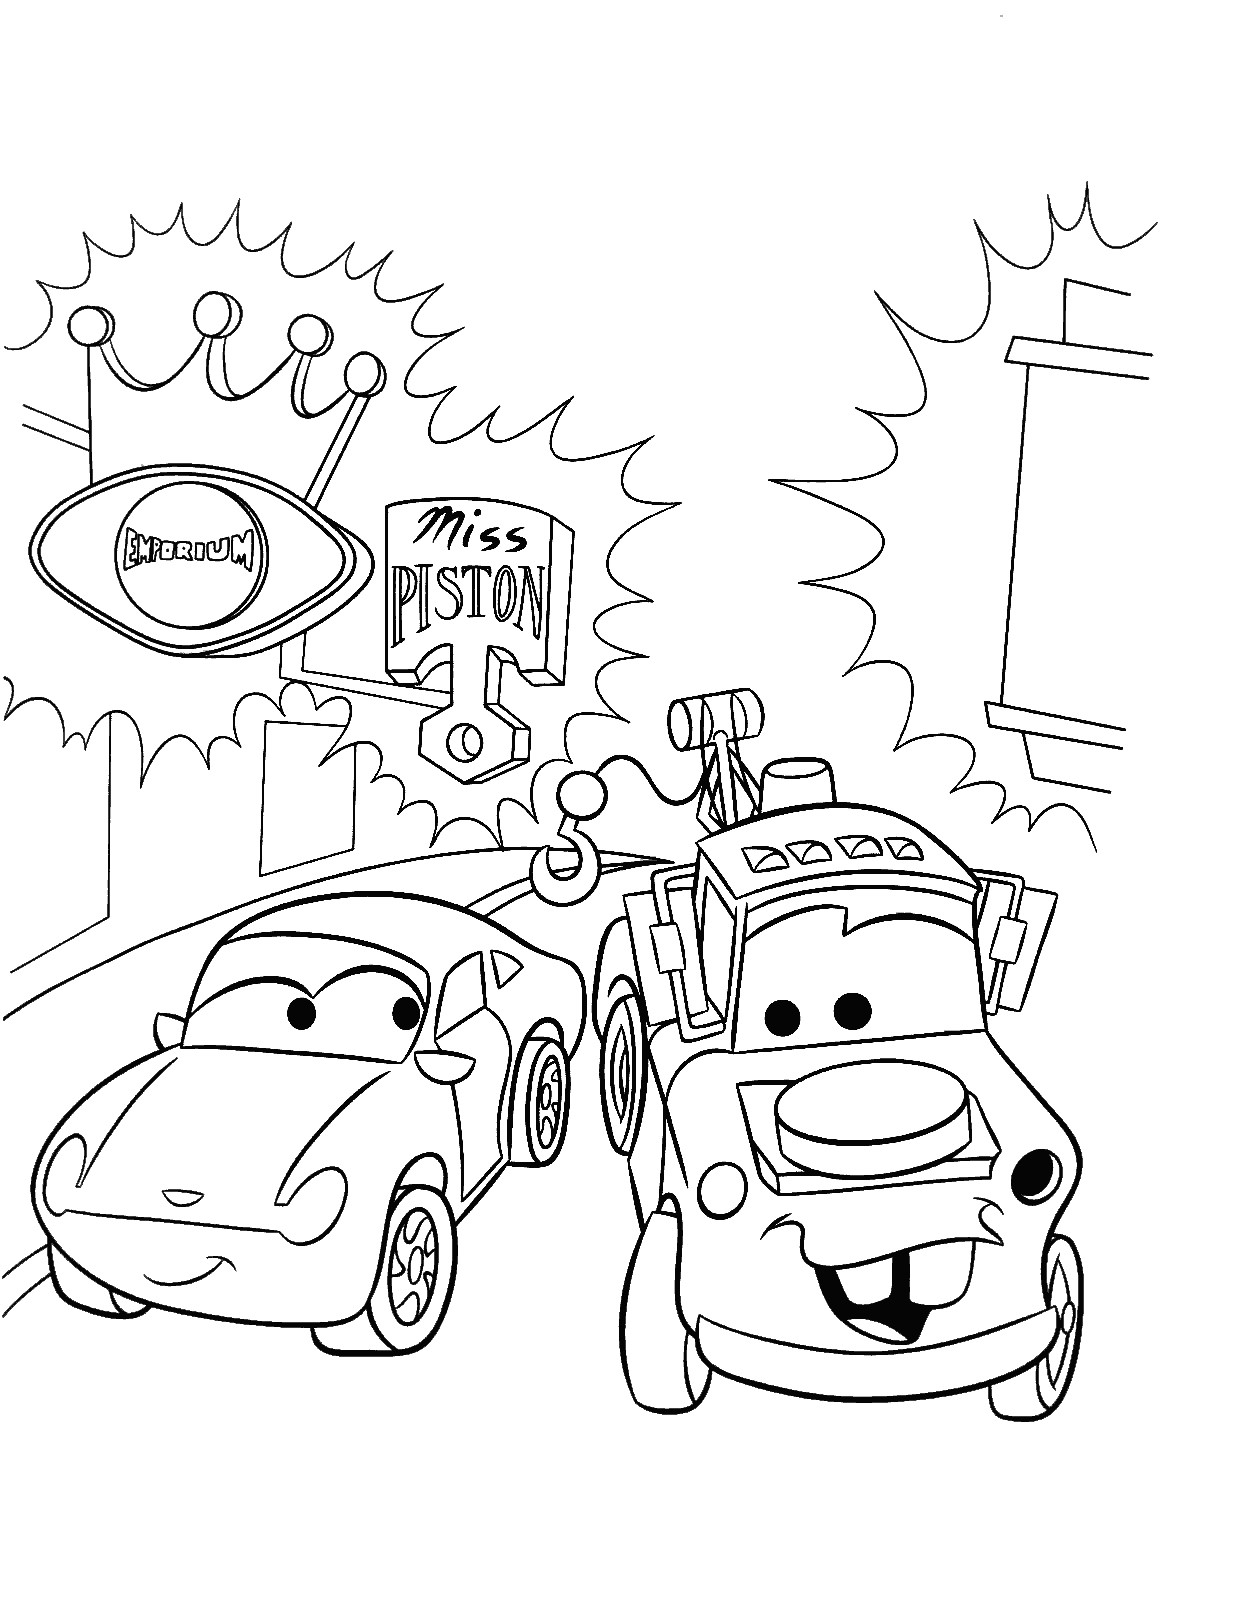 lightning mcqueen coloring pages pdf lightning mcqueen coloring pages printable pdf pages coloring lightning pdf mcqueen